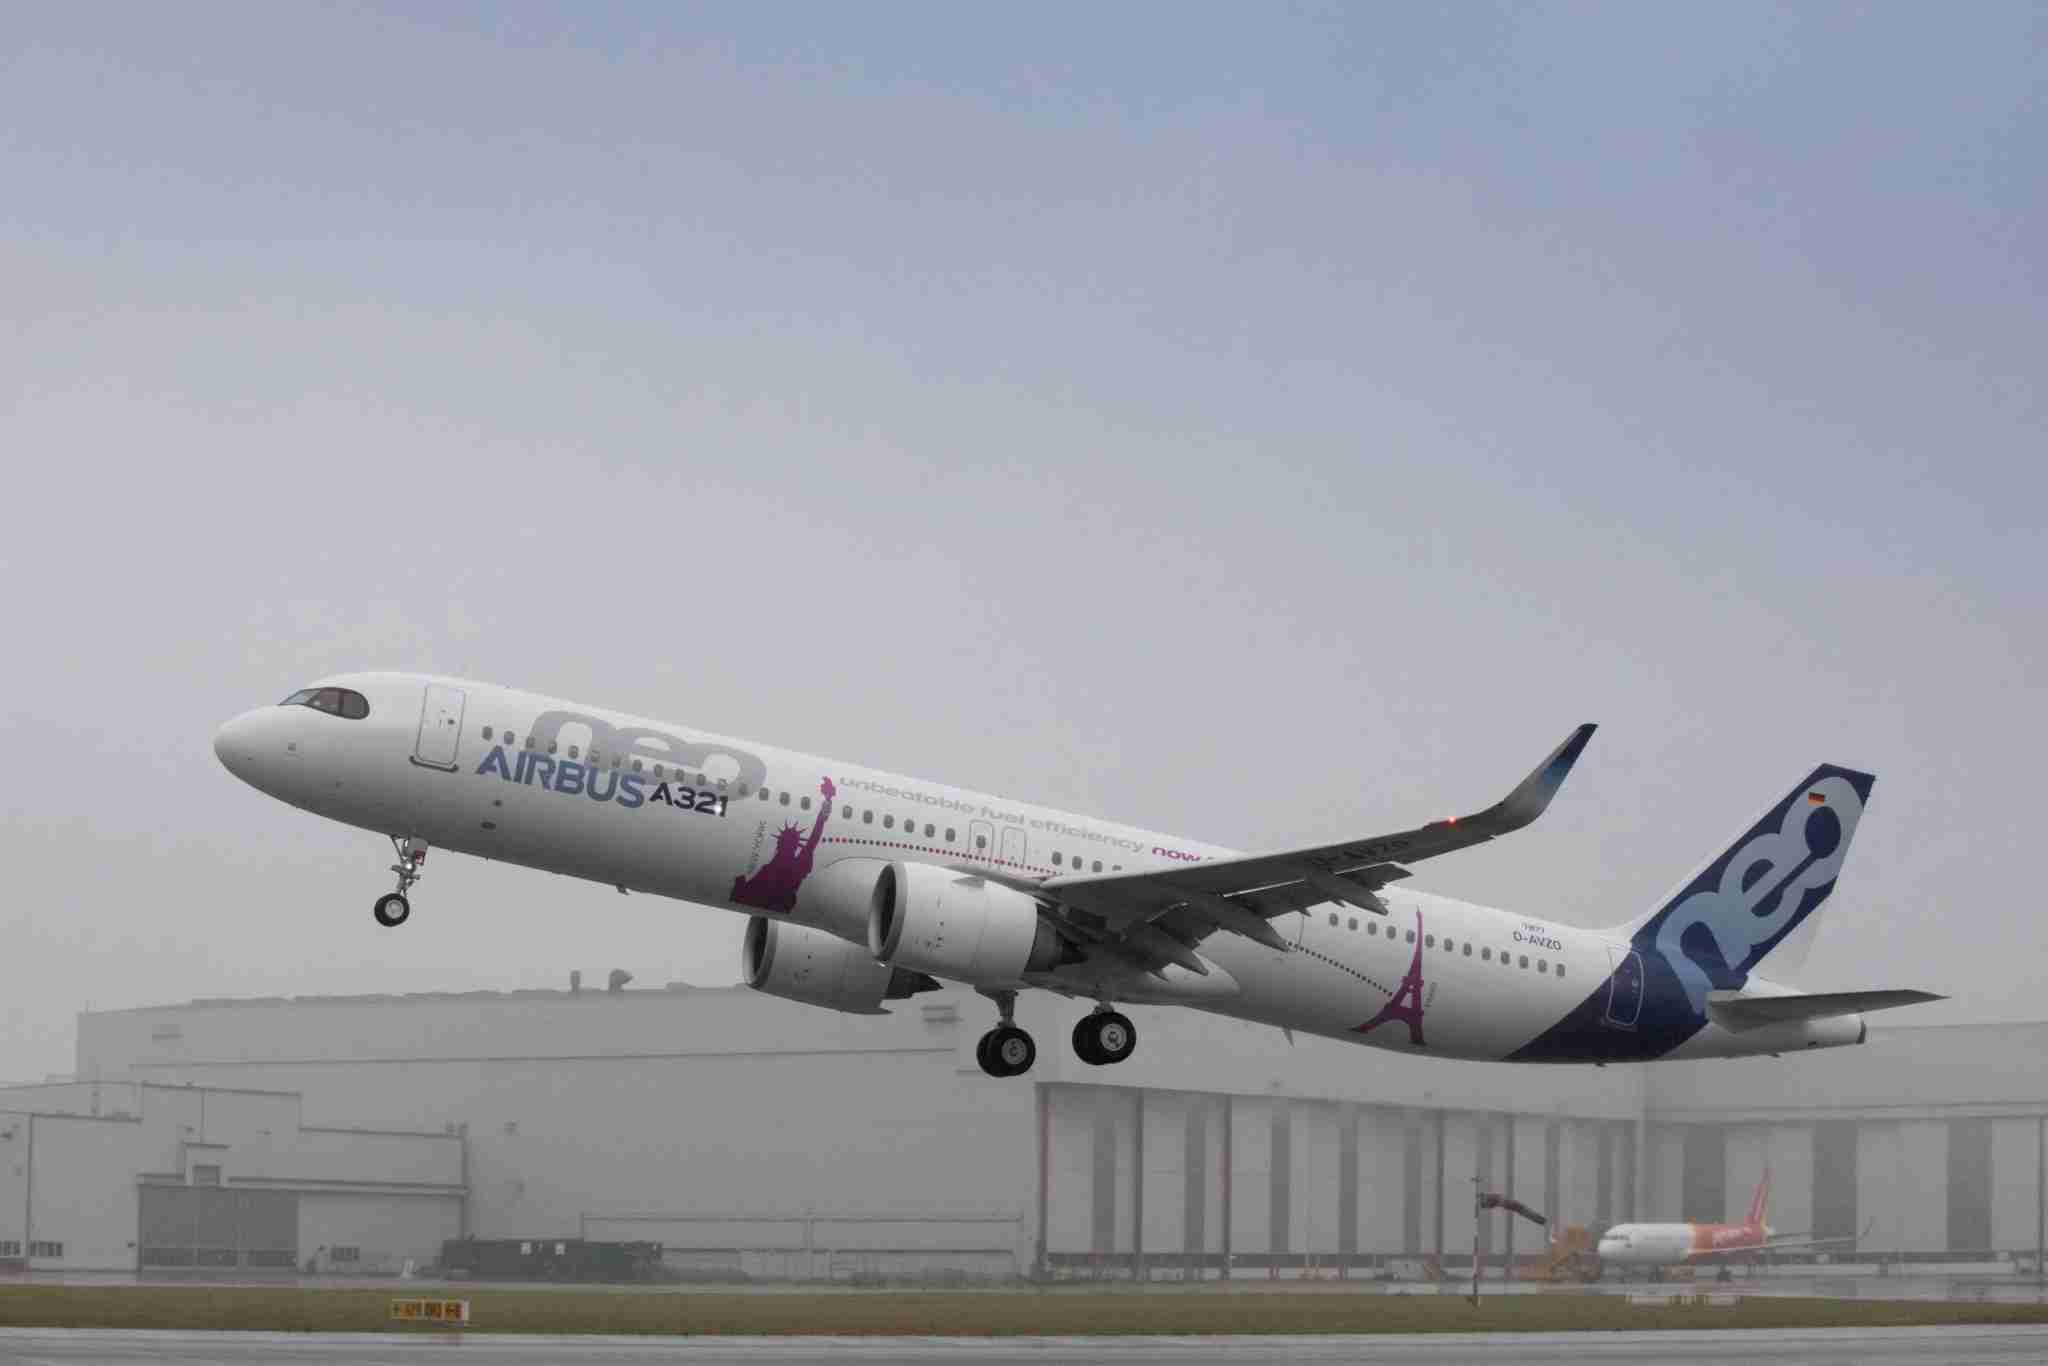 An Airbus A321neo takes off during the flight test program in 2018. (Image courtesy of Airbus)